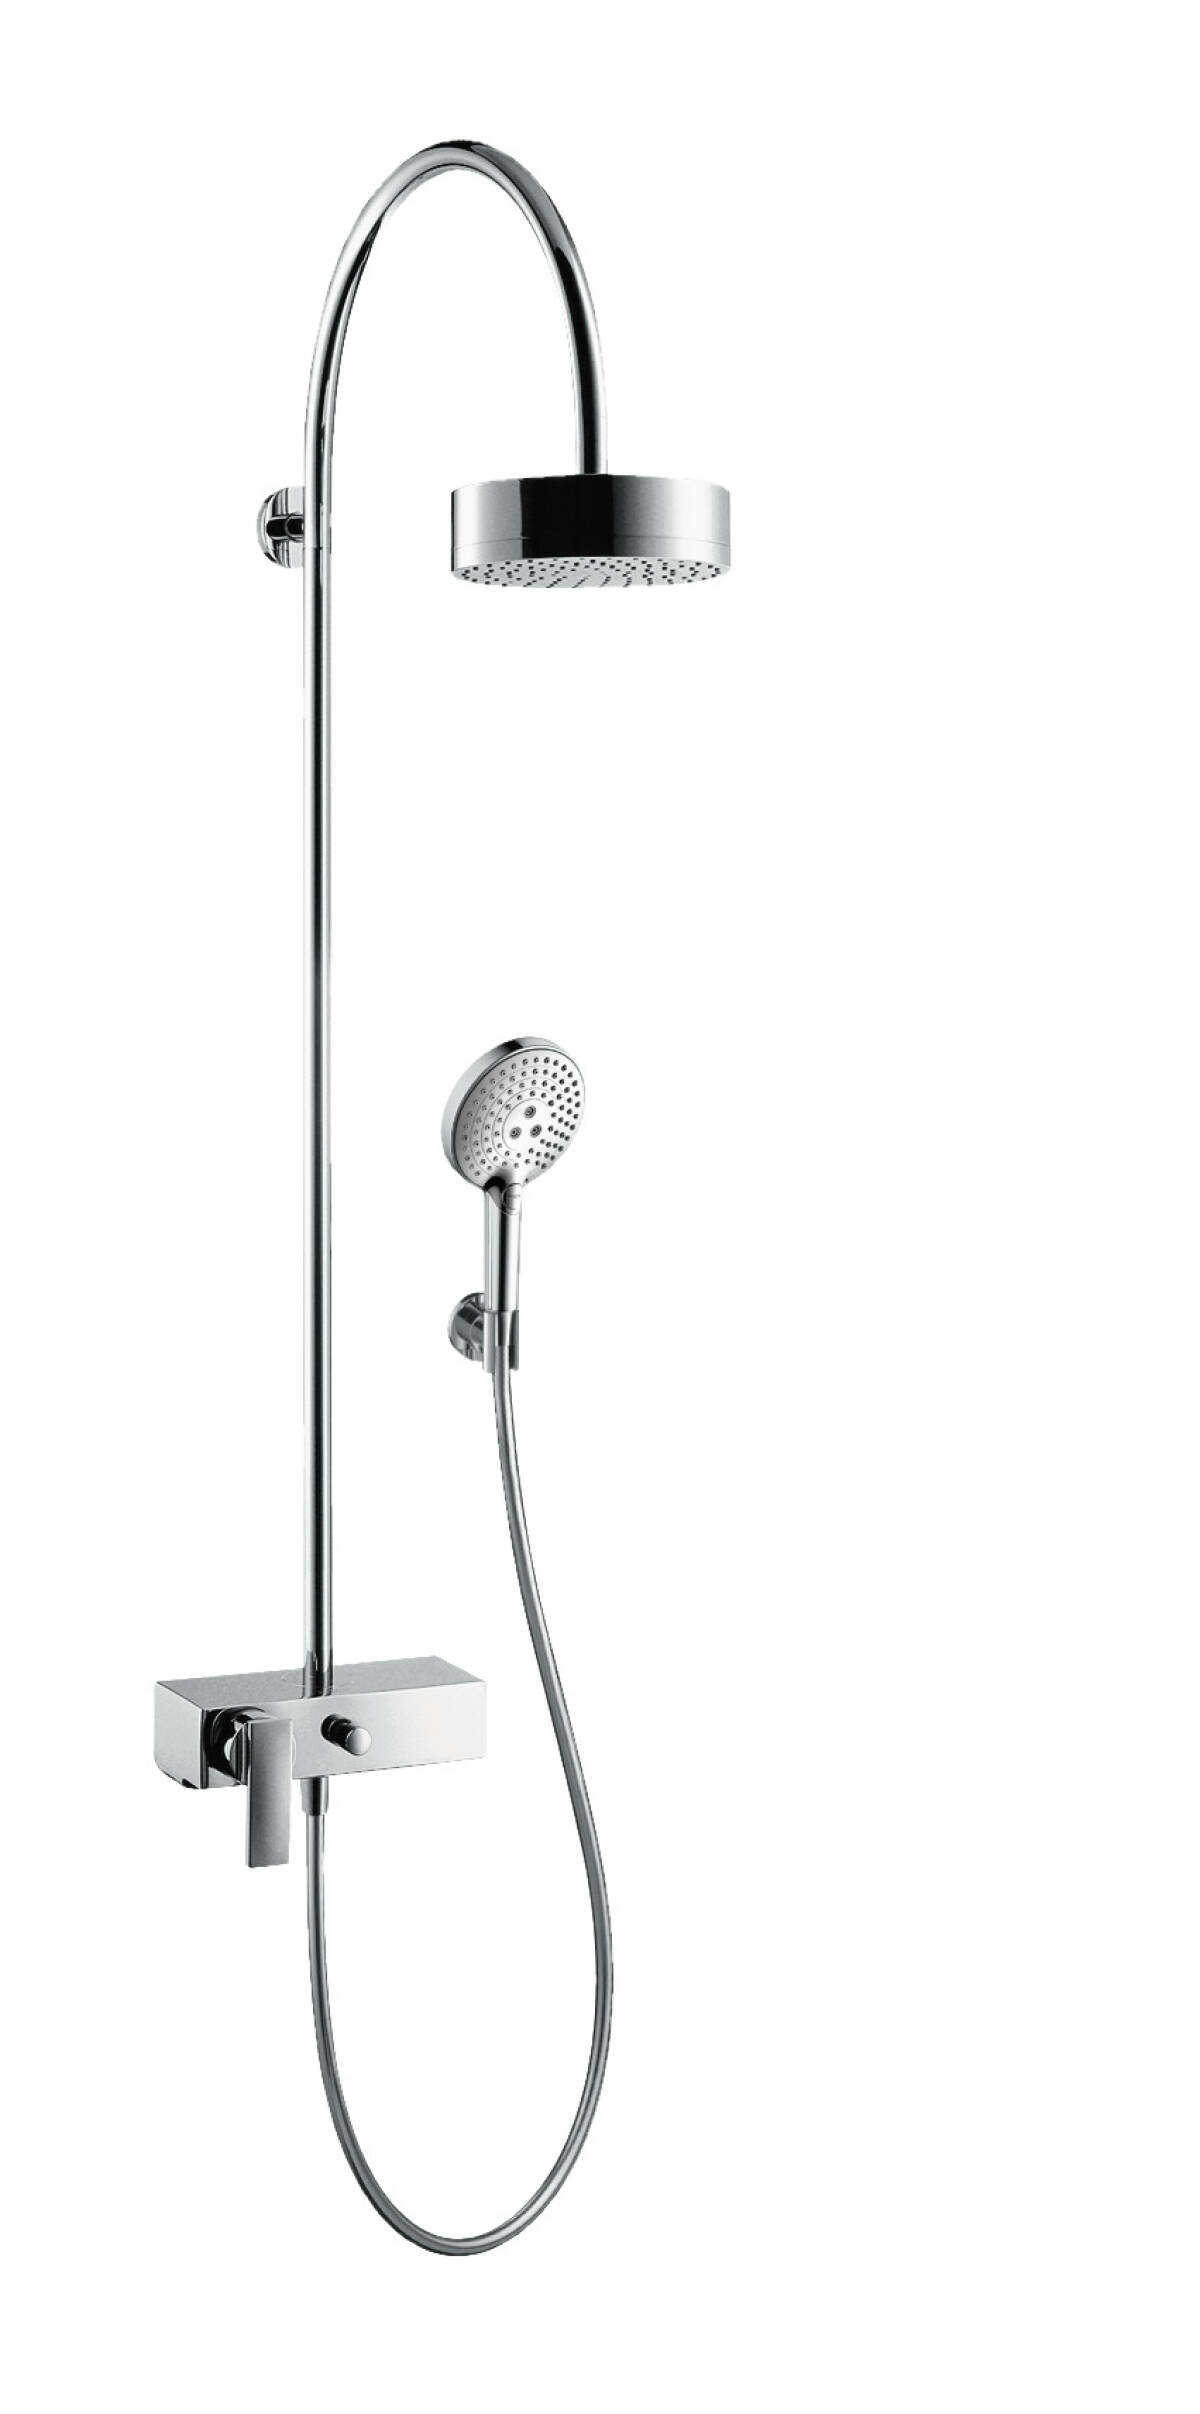 Showerpipe with single lever mixer and overhead shower 180 1jet, Chrome, 39620000